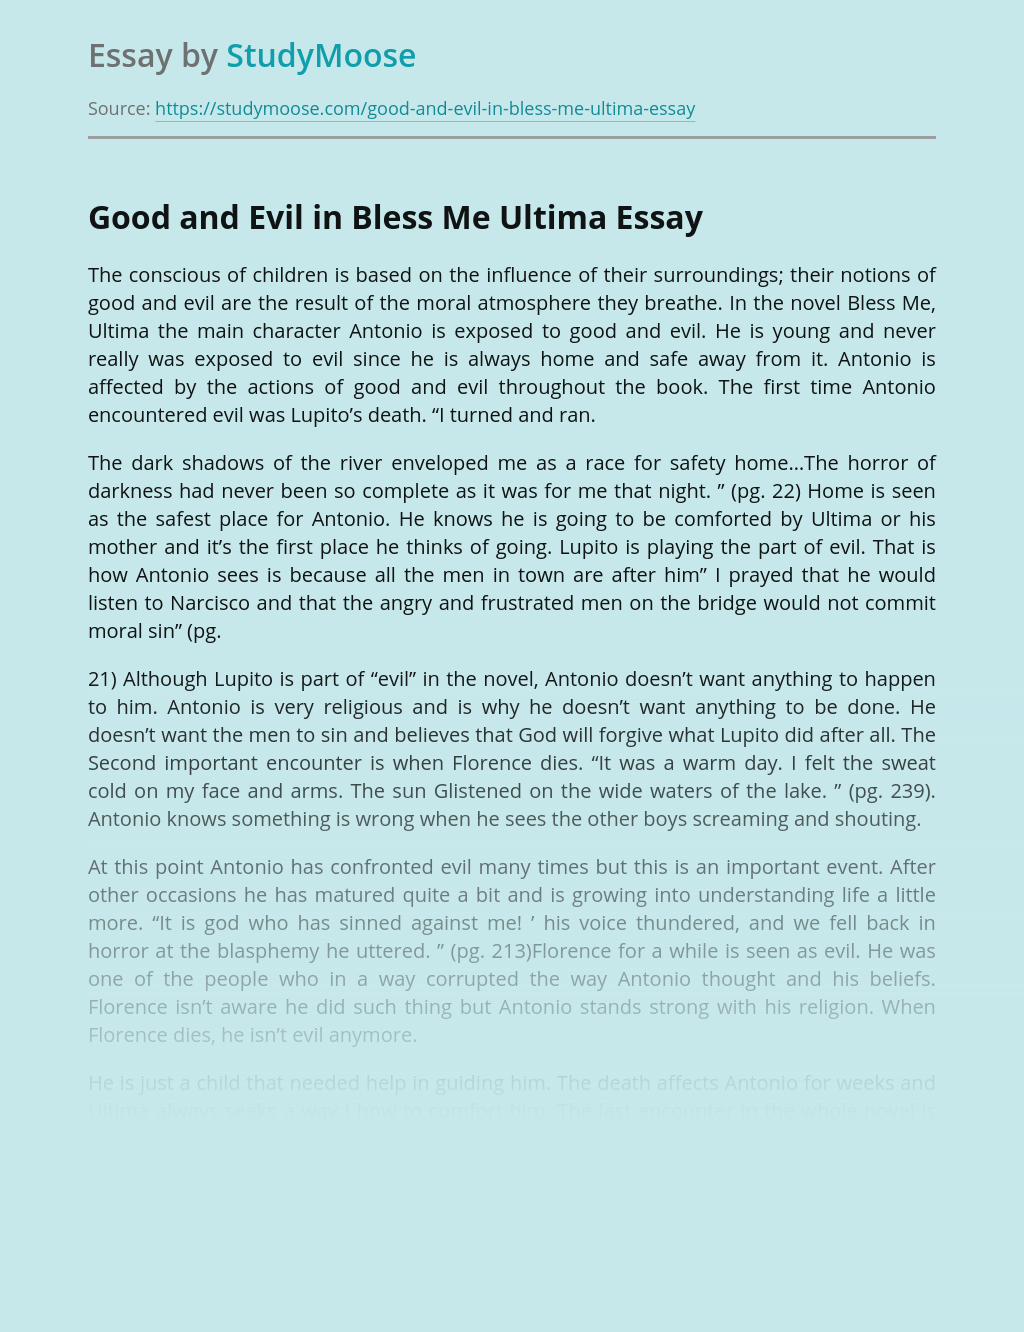 Moral Values in Bless Me Ultima